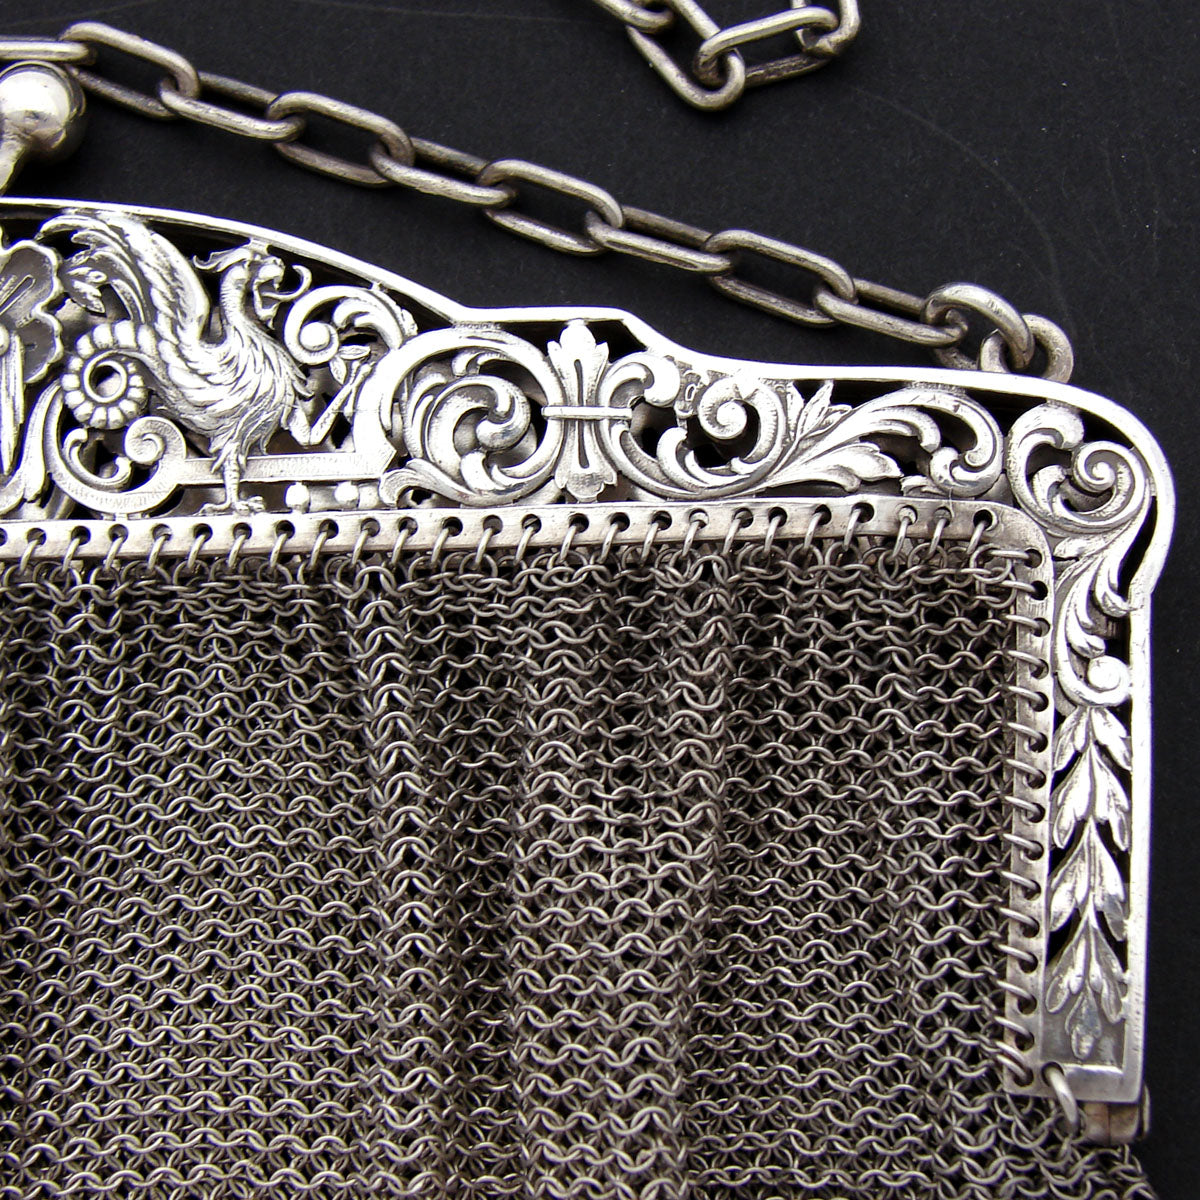 Rare Antique French 800 (nearly sterling) Silver Purse, Hand Bad, Griffin Figures